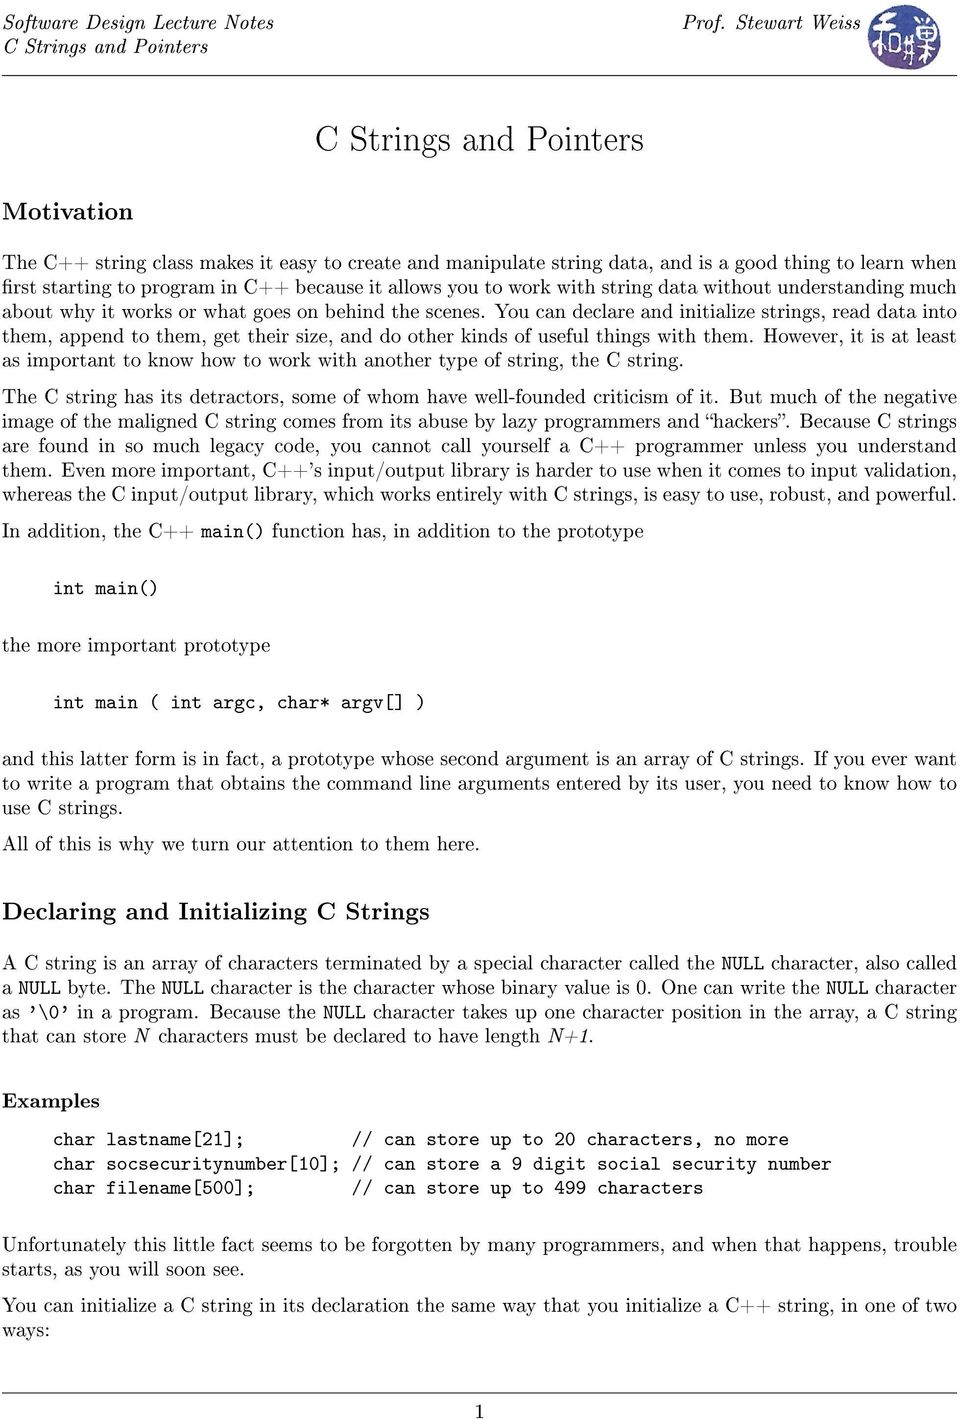 C Strings and Pointers - PDF